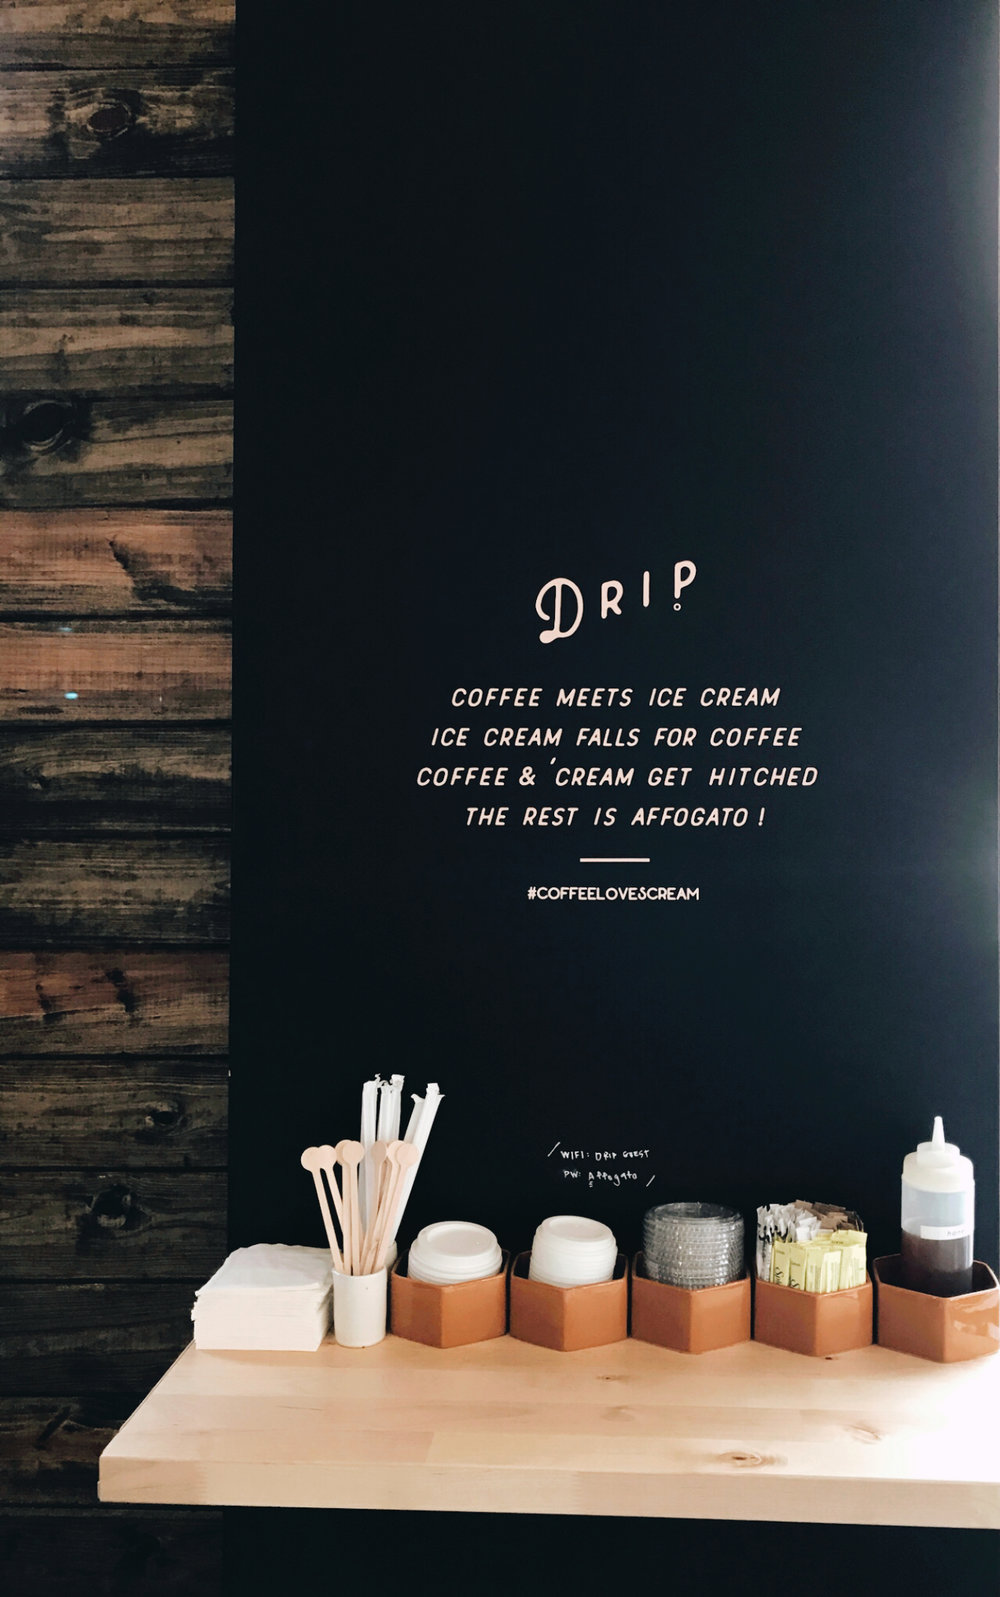 DRIP AFFOGATO BAR, NEW ORLEANS TRAVEL GUIDE